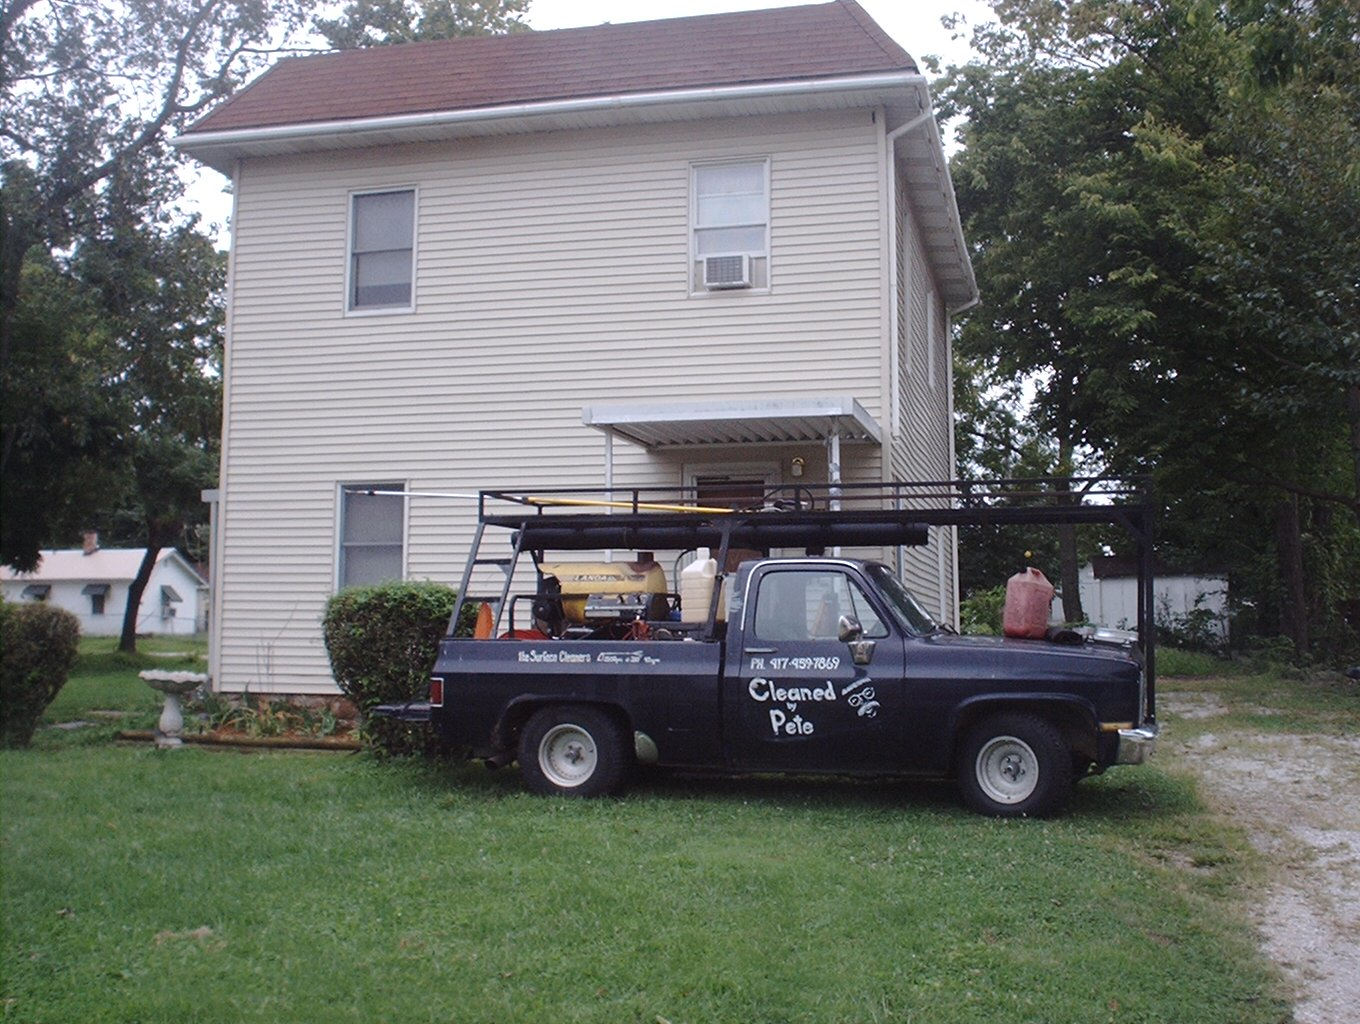 Service truck in front of completed two story house cleaning.